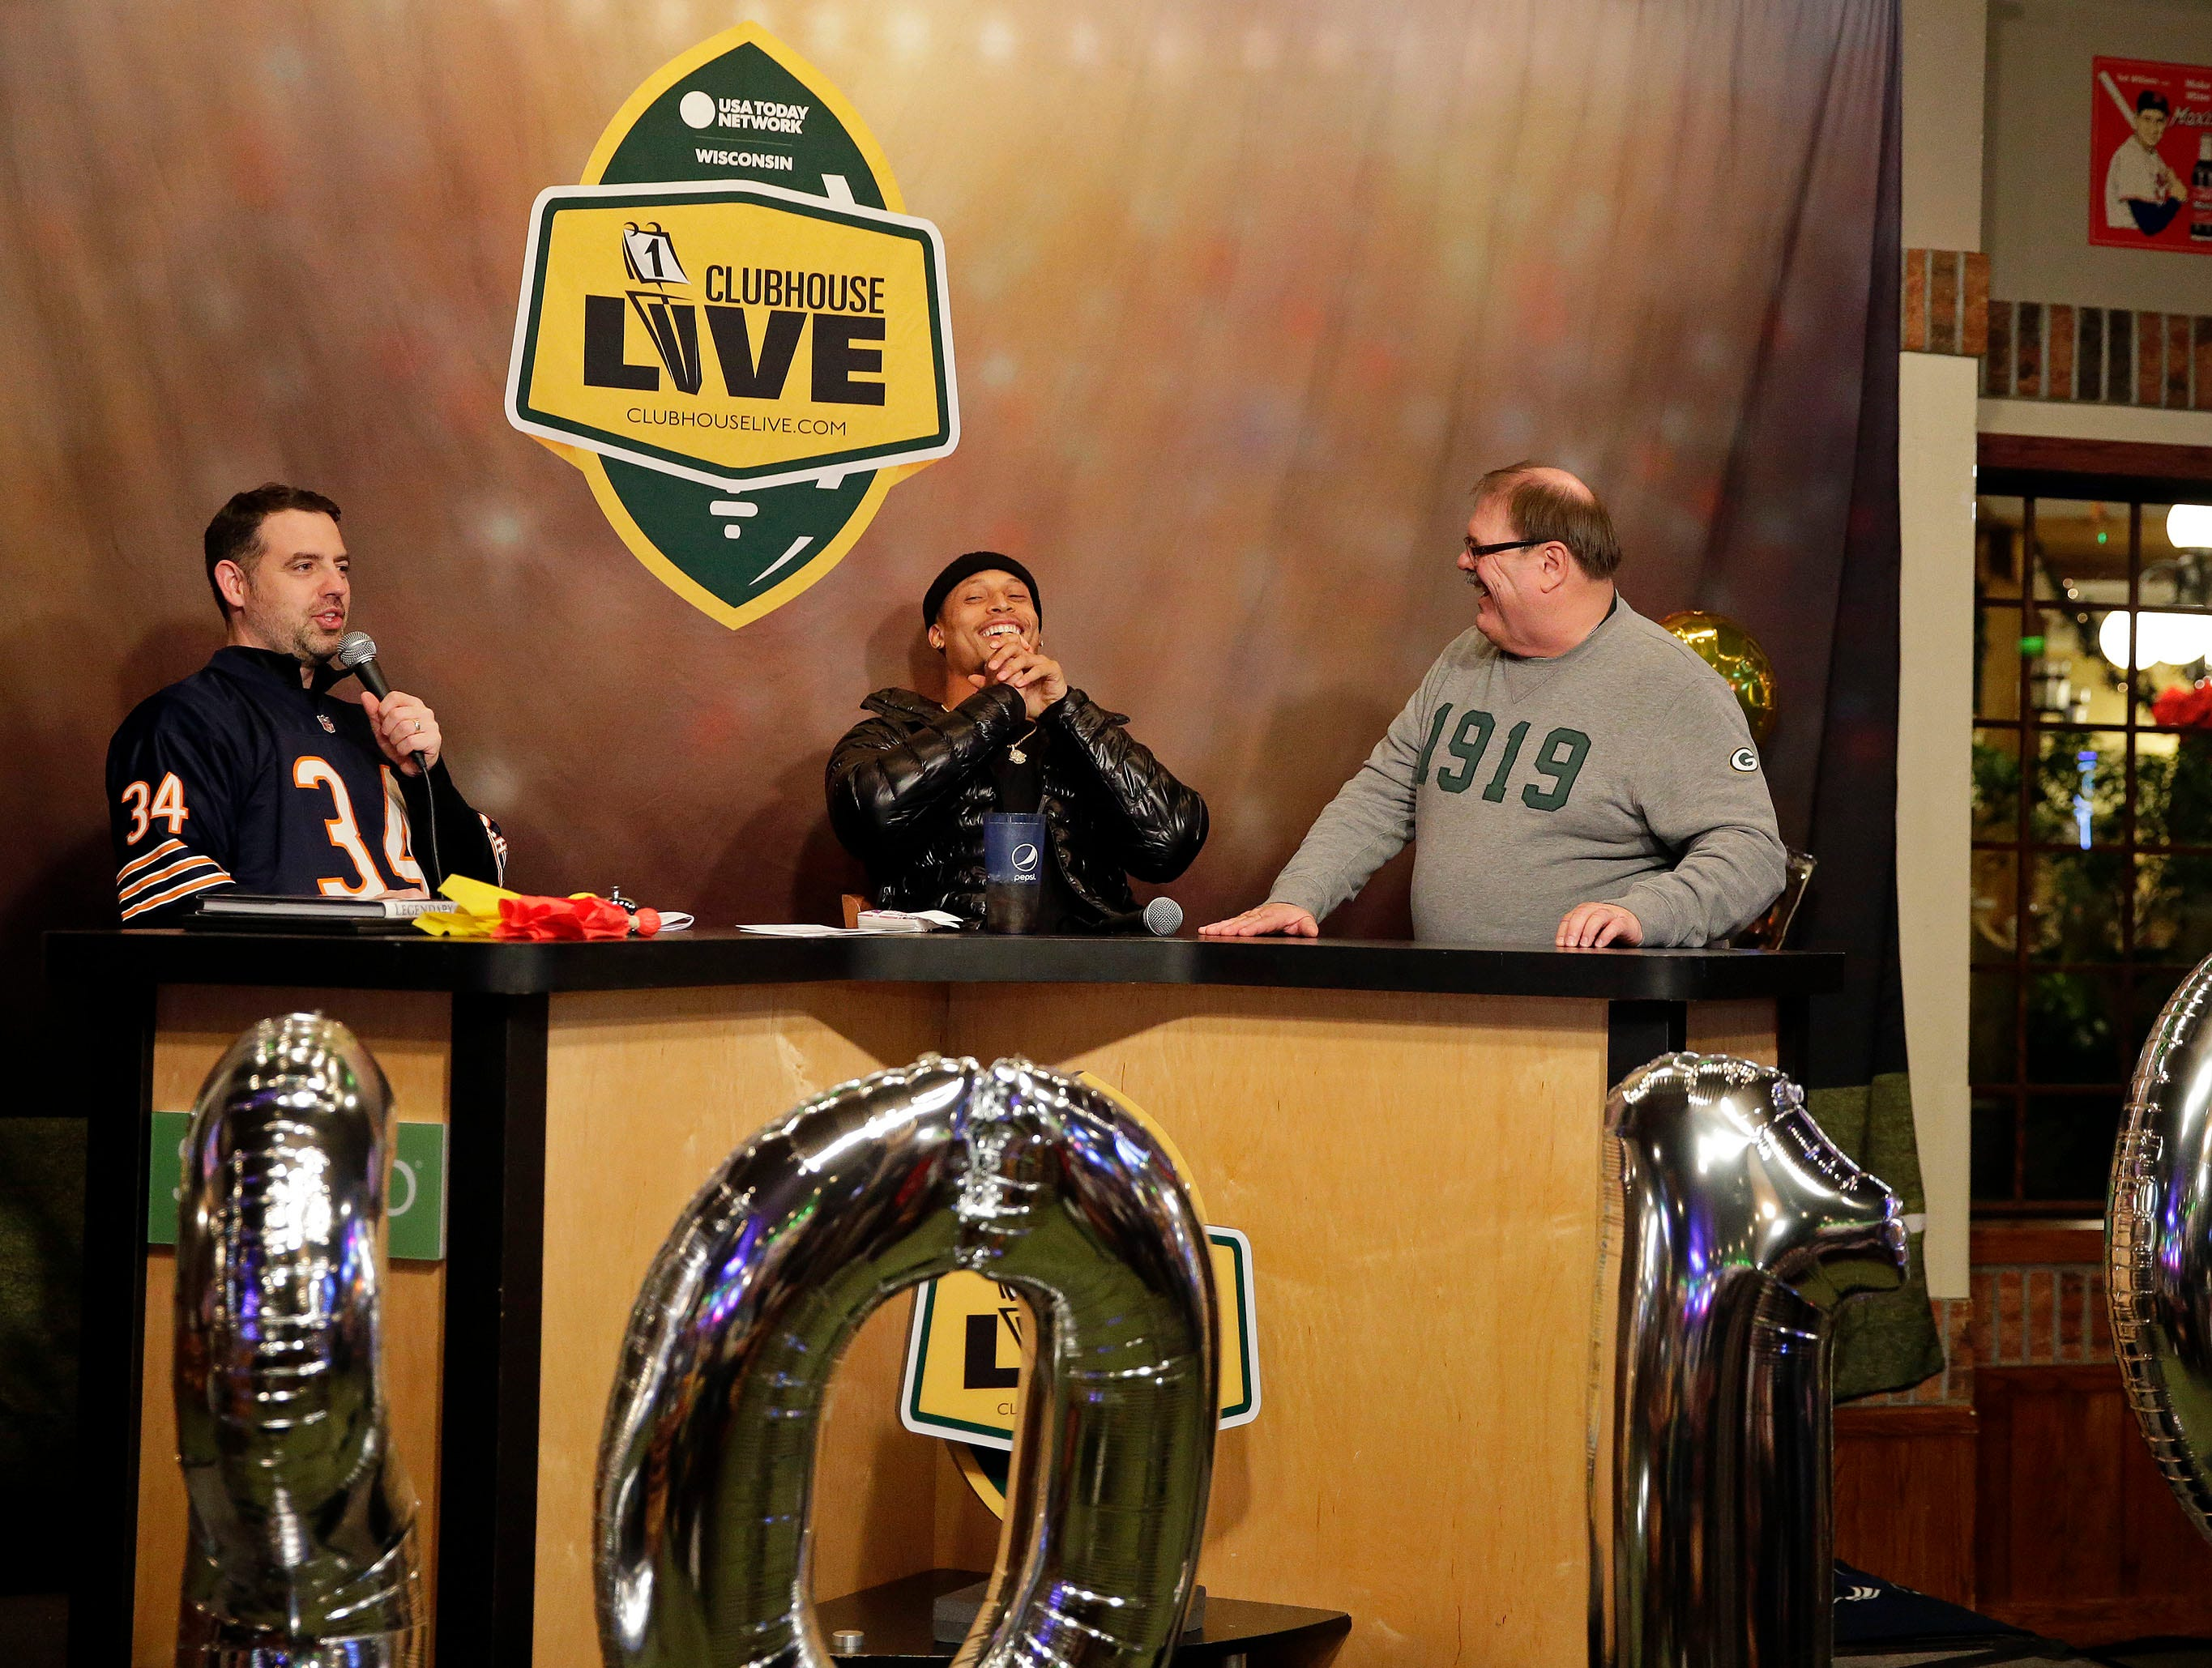 Clubhouse Live co-hosts Brett Christopherson, Ricardo Argeullo, Margaret Naczek and Green Bay Packer Josh Jones talk football Tuesday, January 1, 2019, at the Red Lion Paper Valley Hotel in Appleton, Wis.